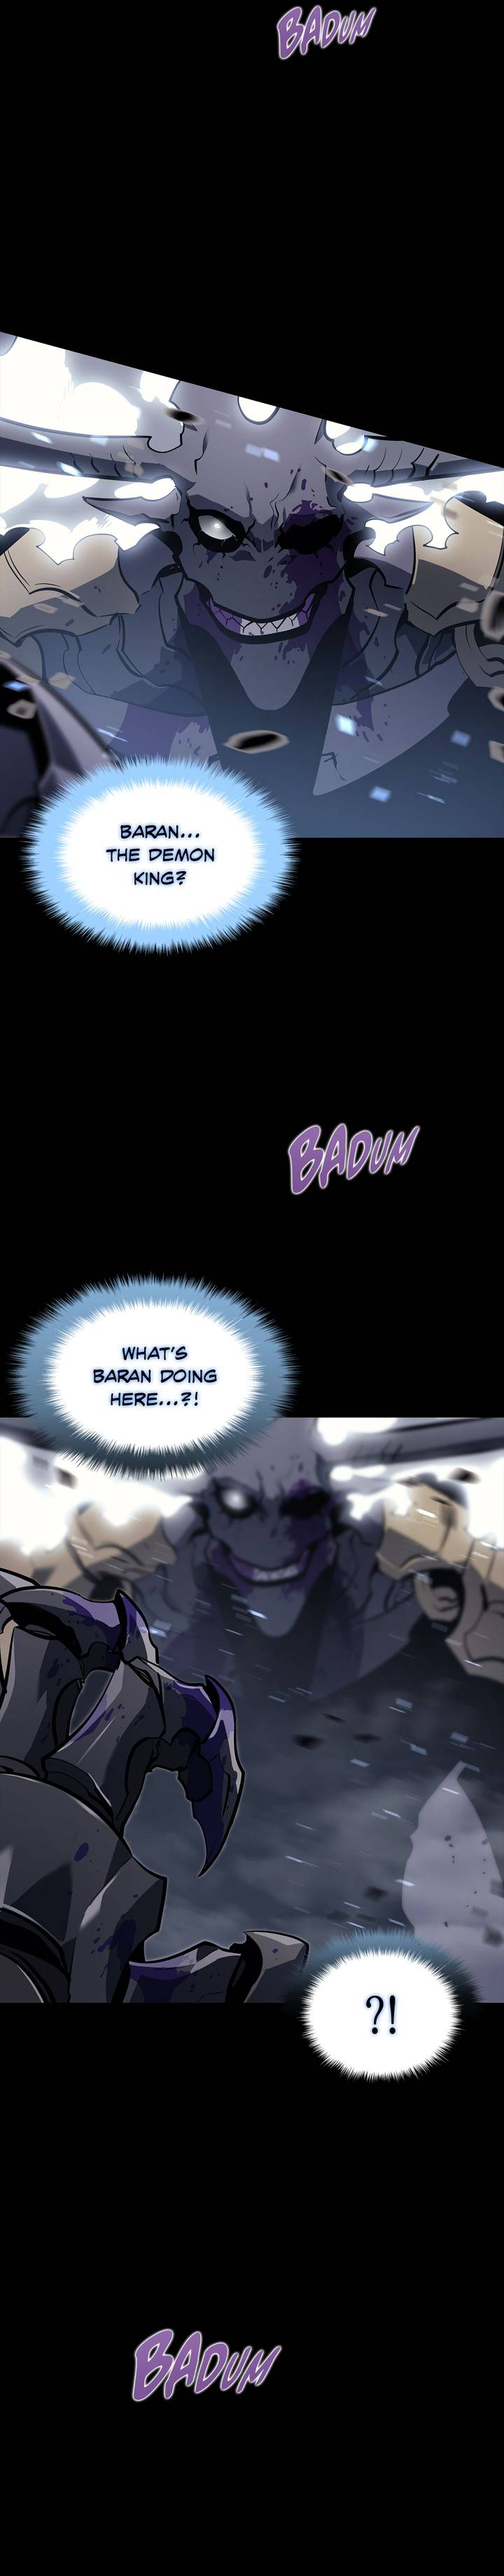 Solo Leveling Chapter 129 Page 36